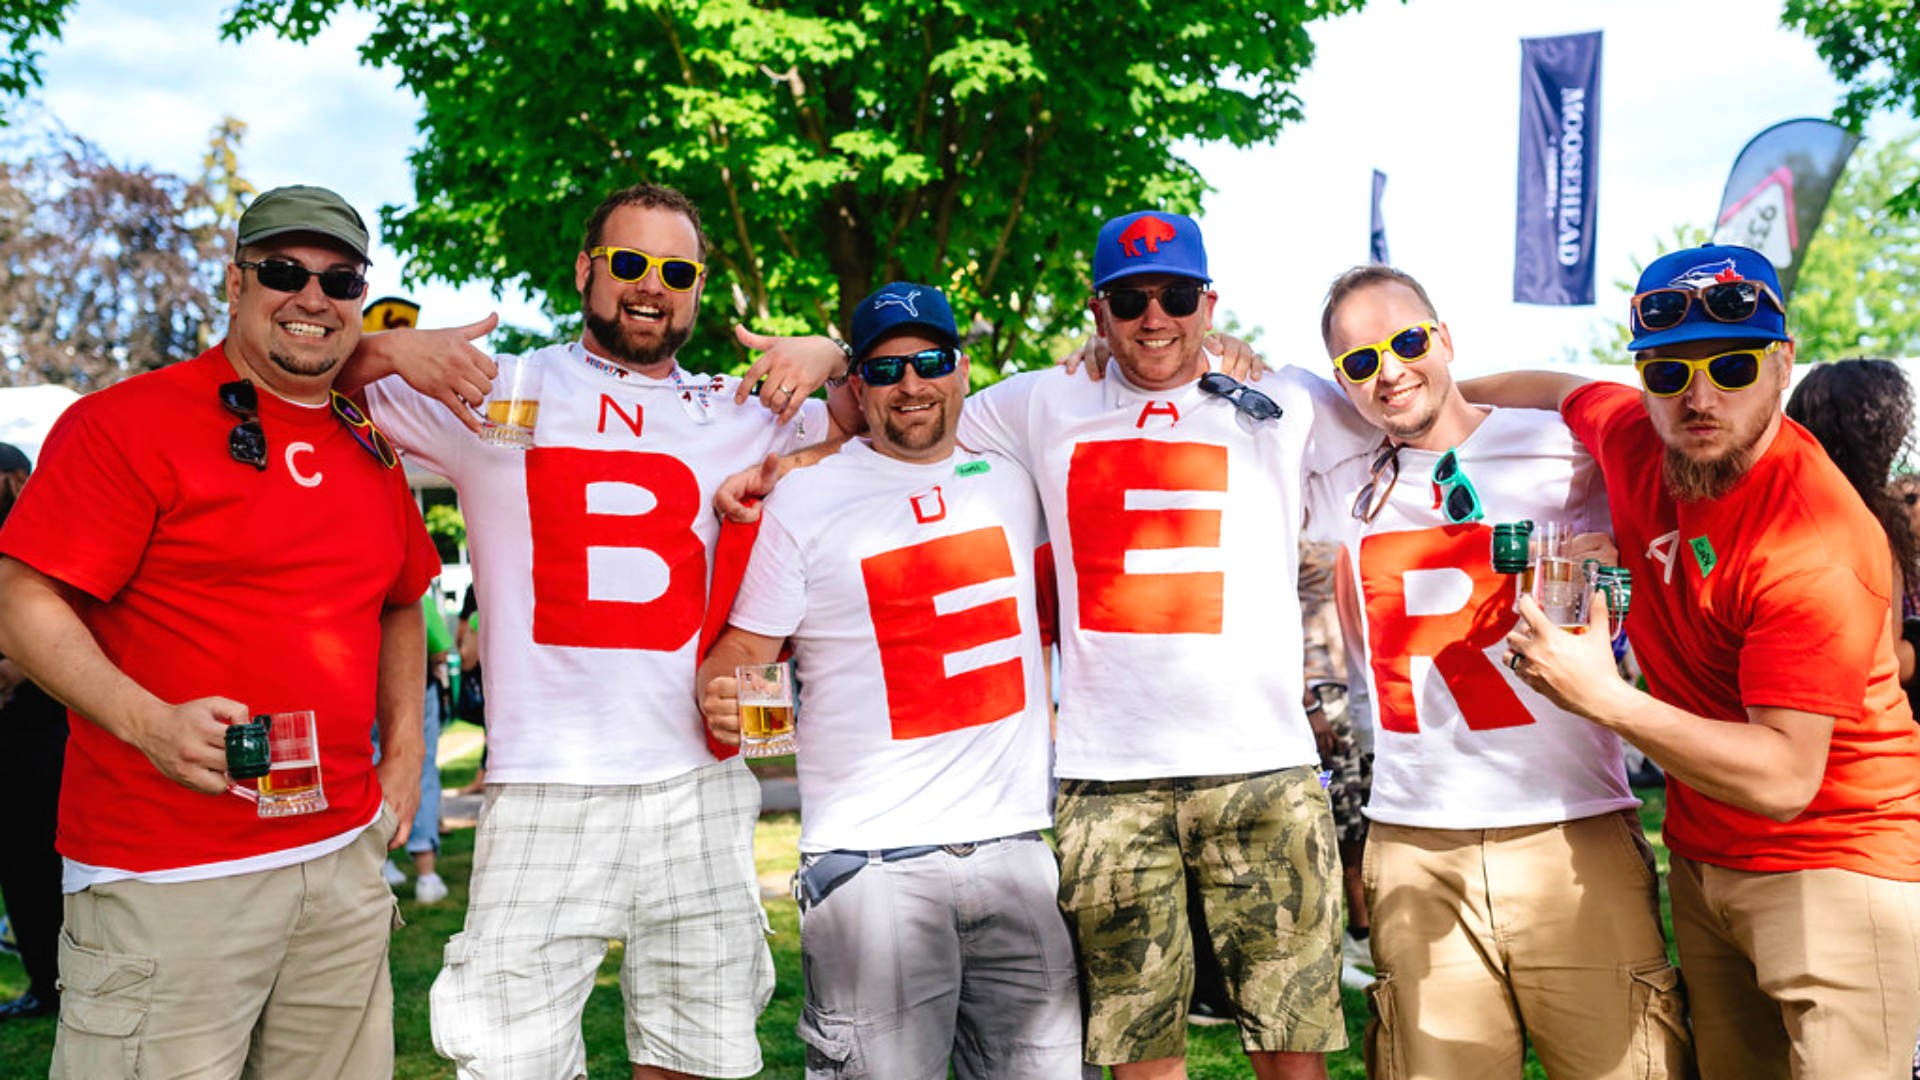 Toronto's Festival of Beer, July 26-29